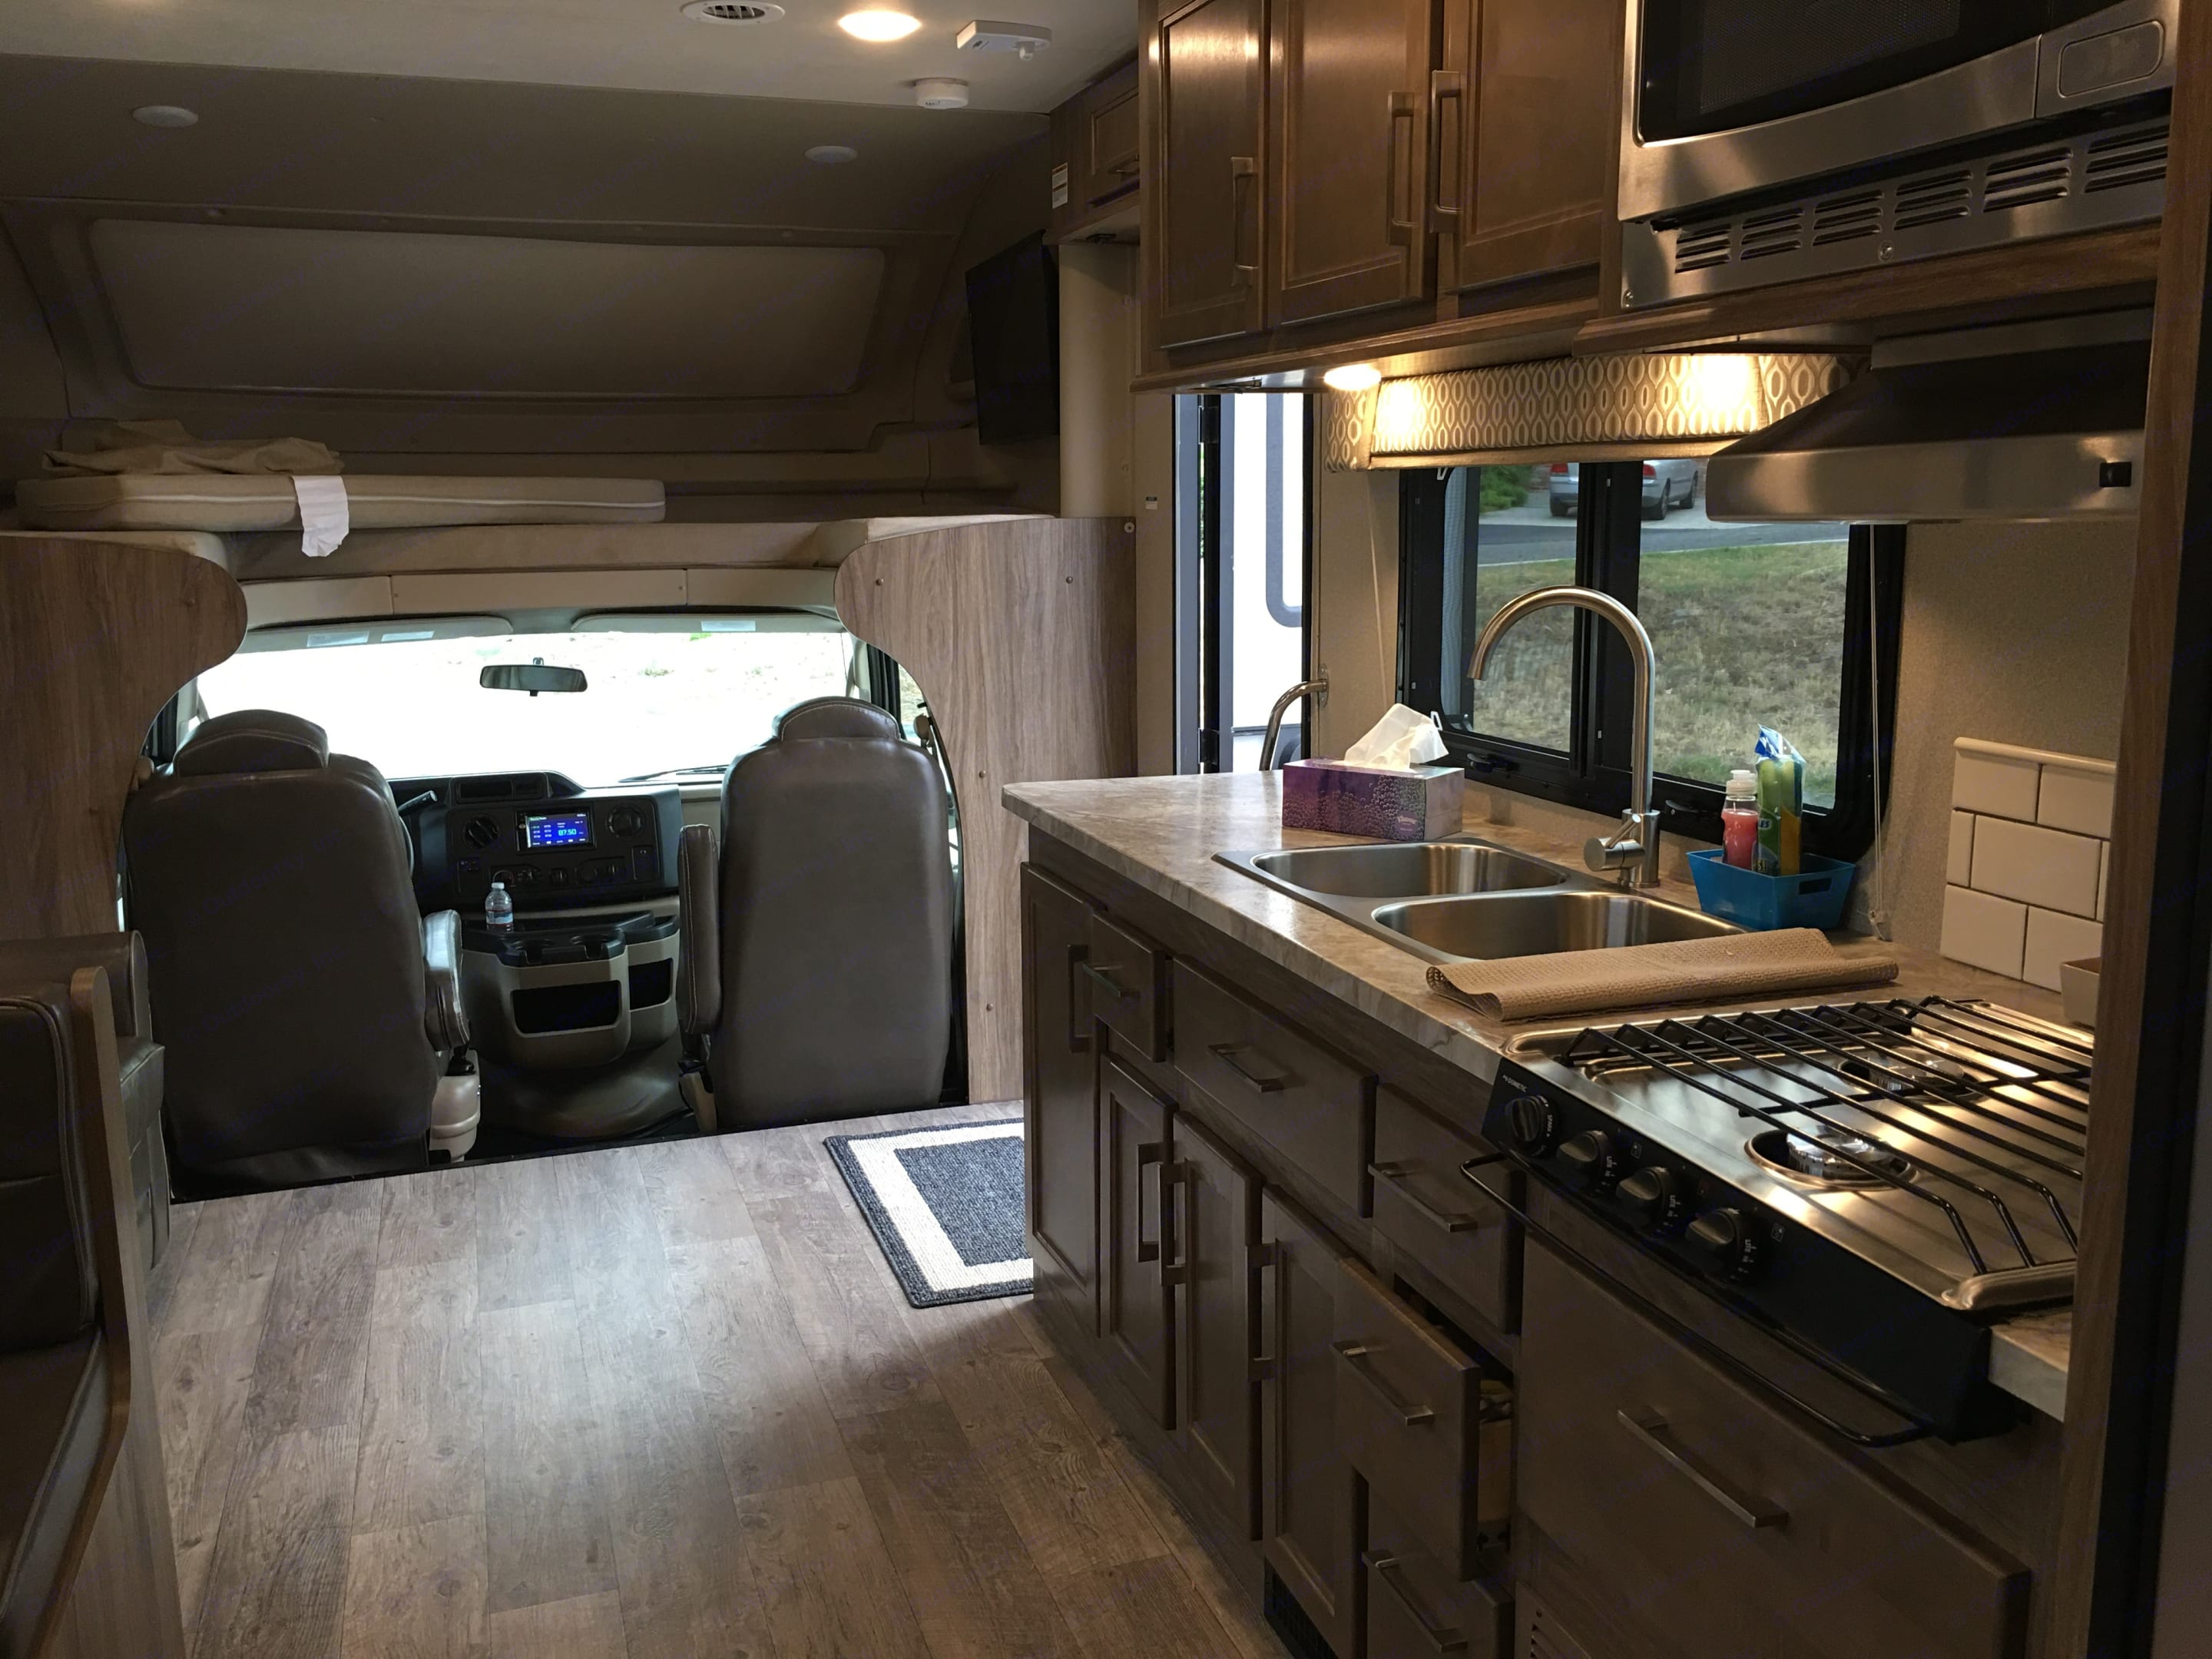 3-burner stove, microwave, convection oven. Everything but the kitchen sink....oh wait, there it is.. Jayco Entegra 2018